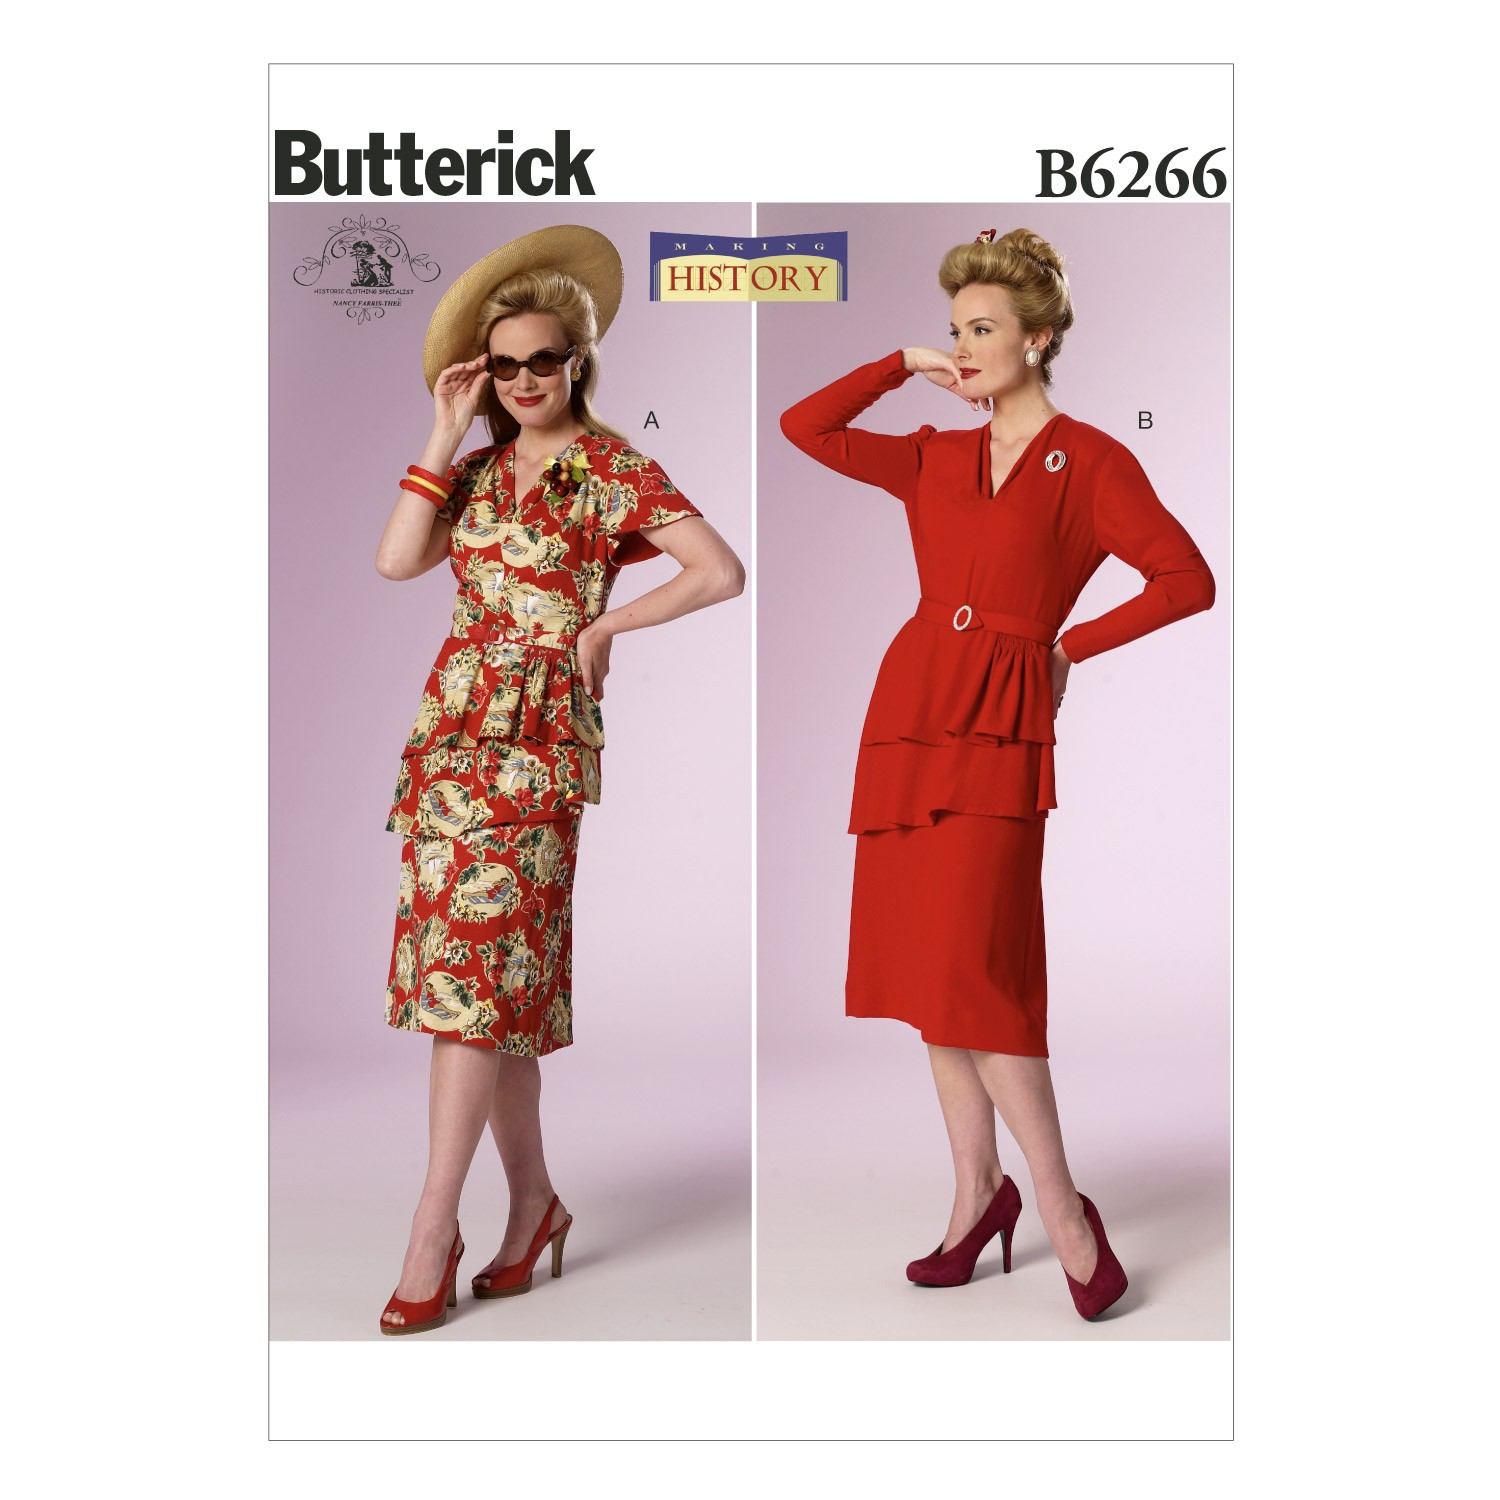 Butterick Sewing Pattern 6266 Misses' Vintage Costume